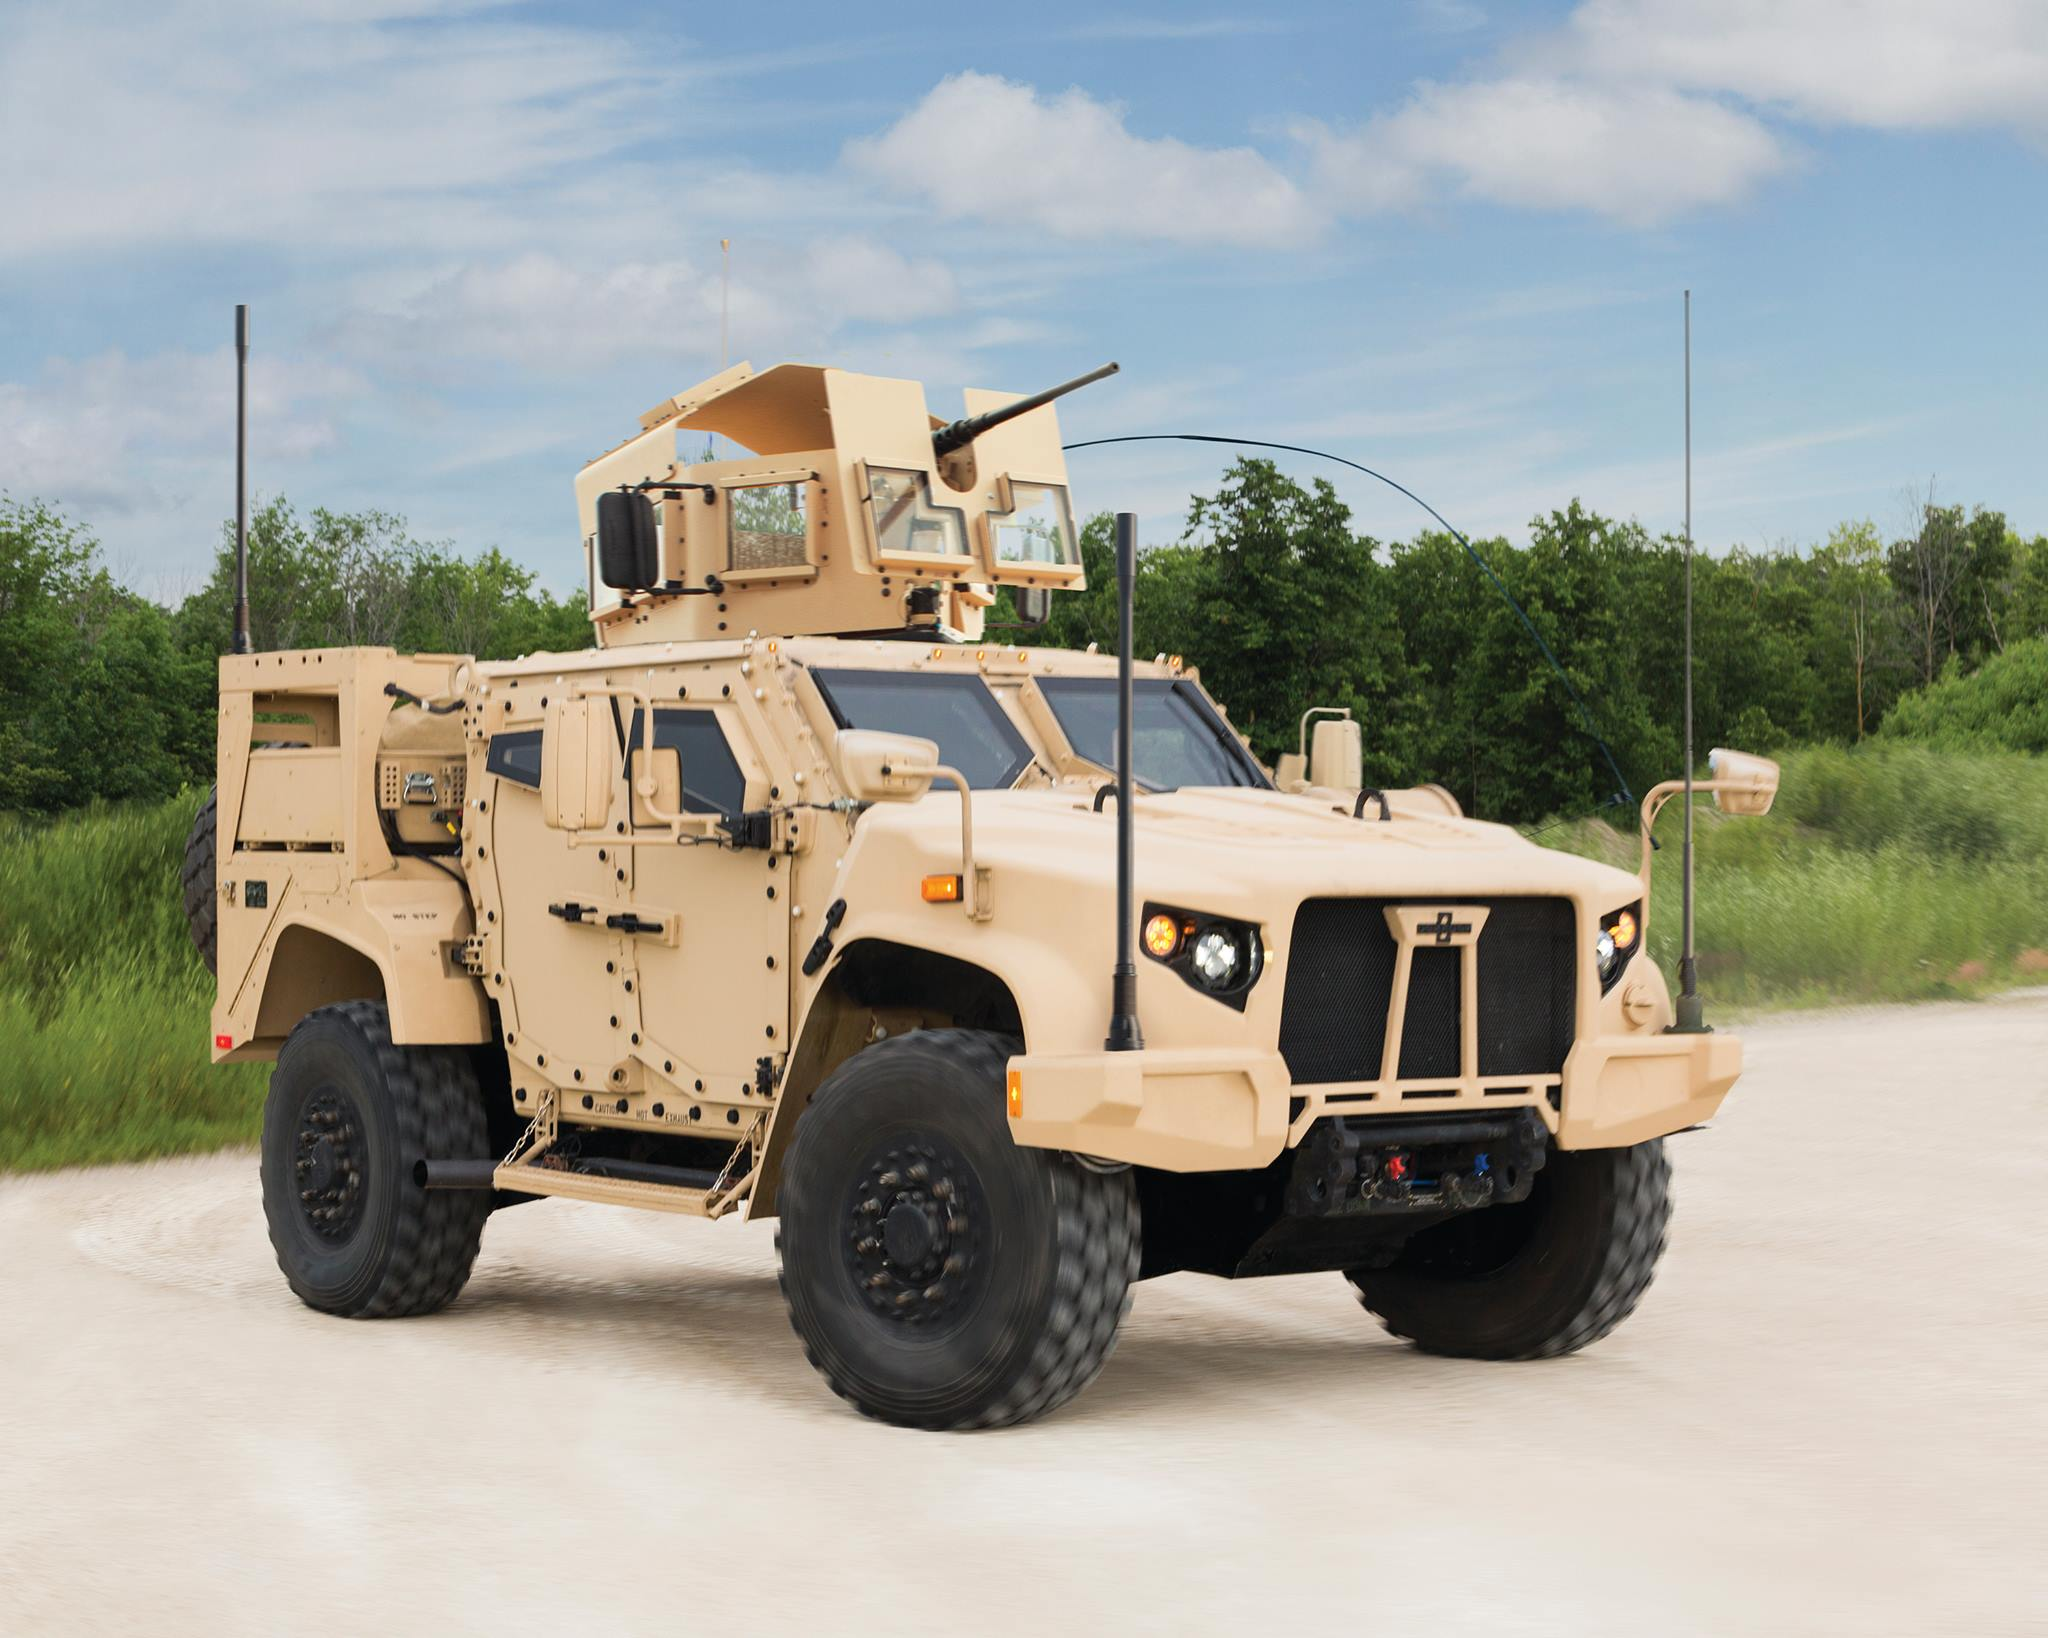 humvee-s-replacement-for-the-us-army-will-be-built-by-oshkosh-the-deal-is-worth-67-billion-99277_1